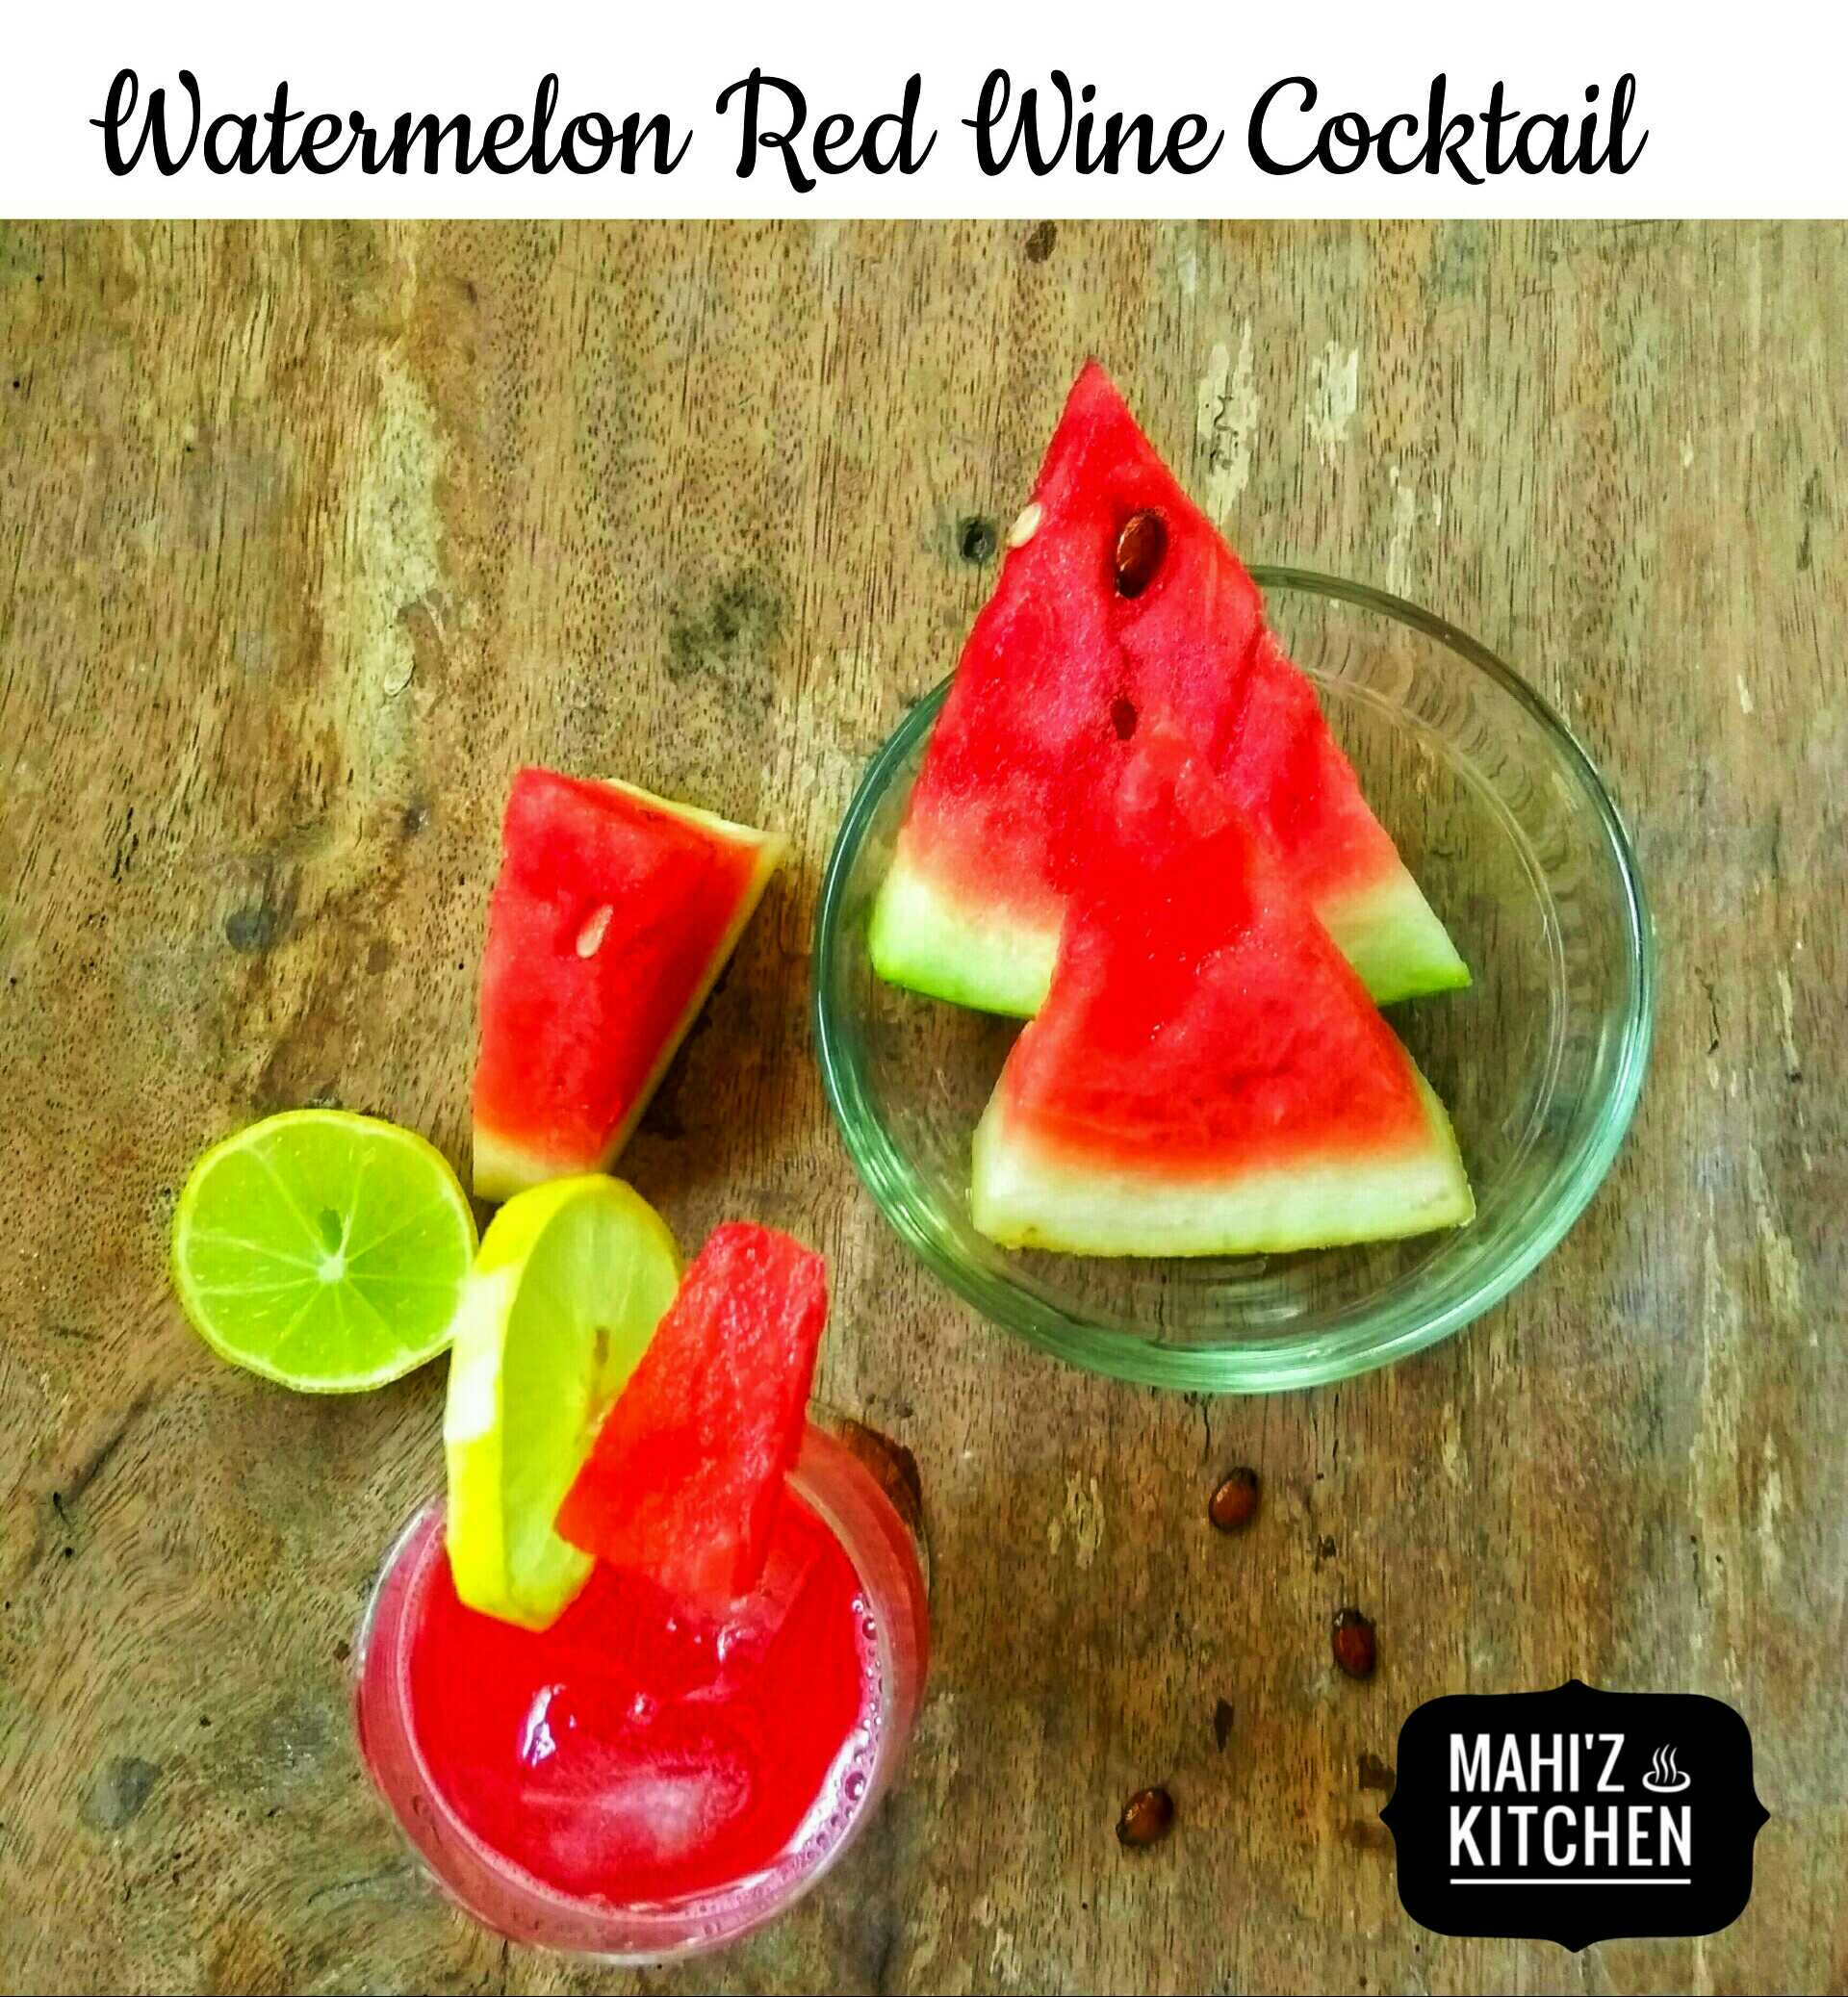 Watermelon Red Wine Cocktail